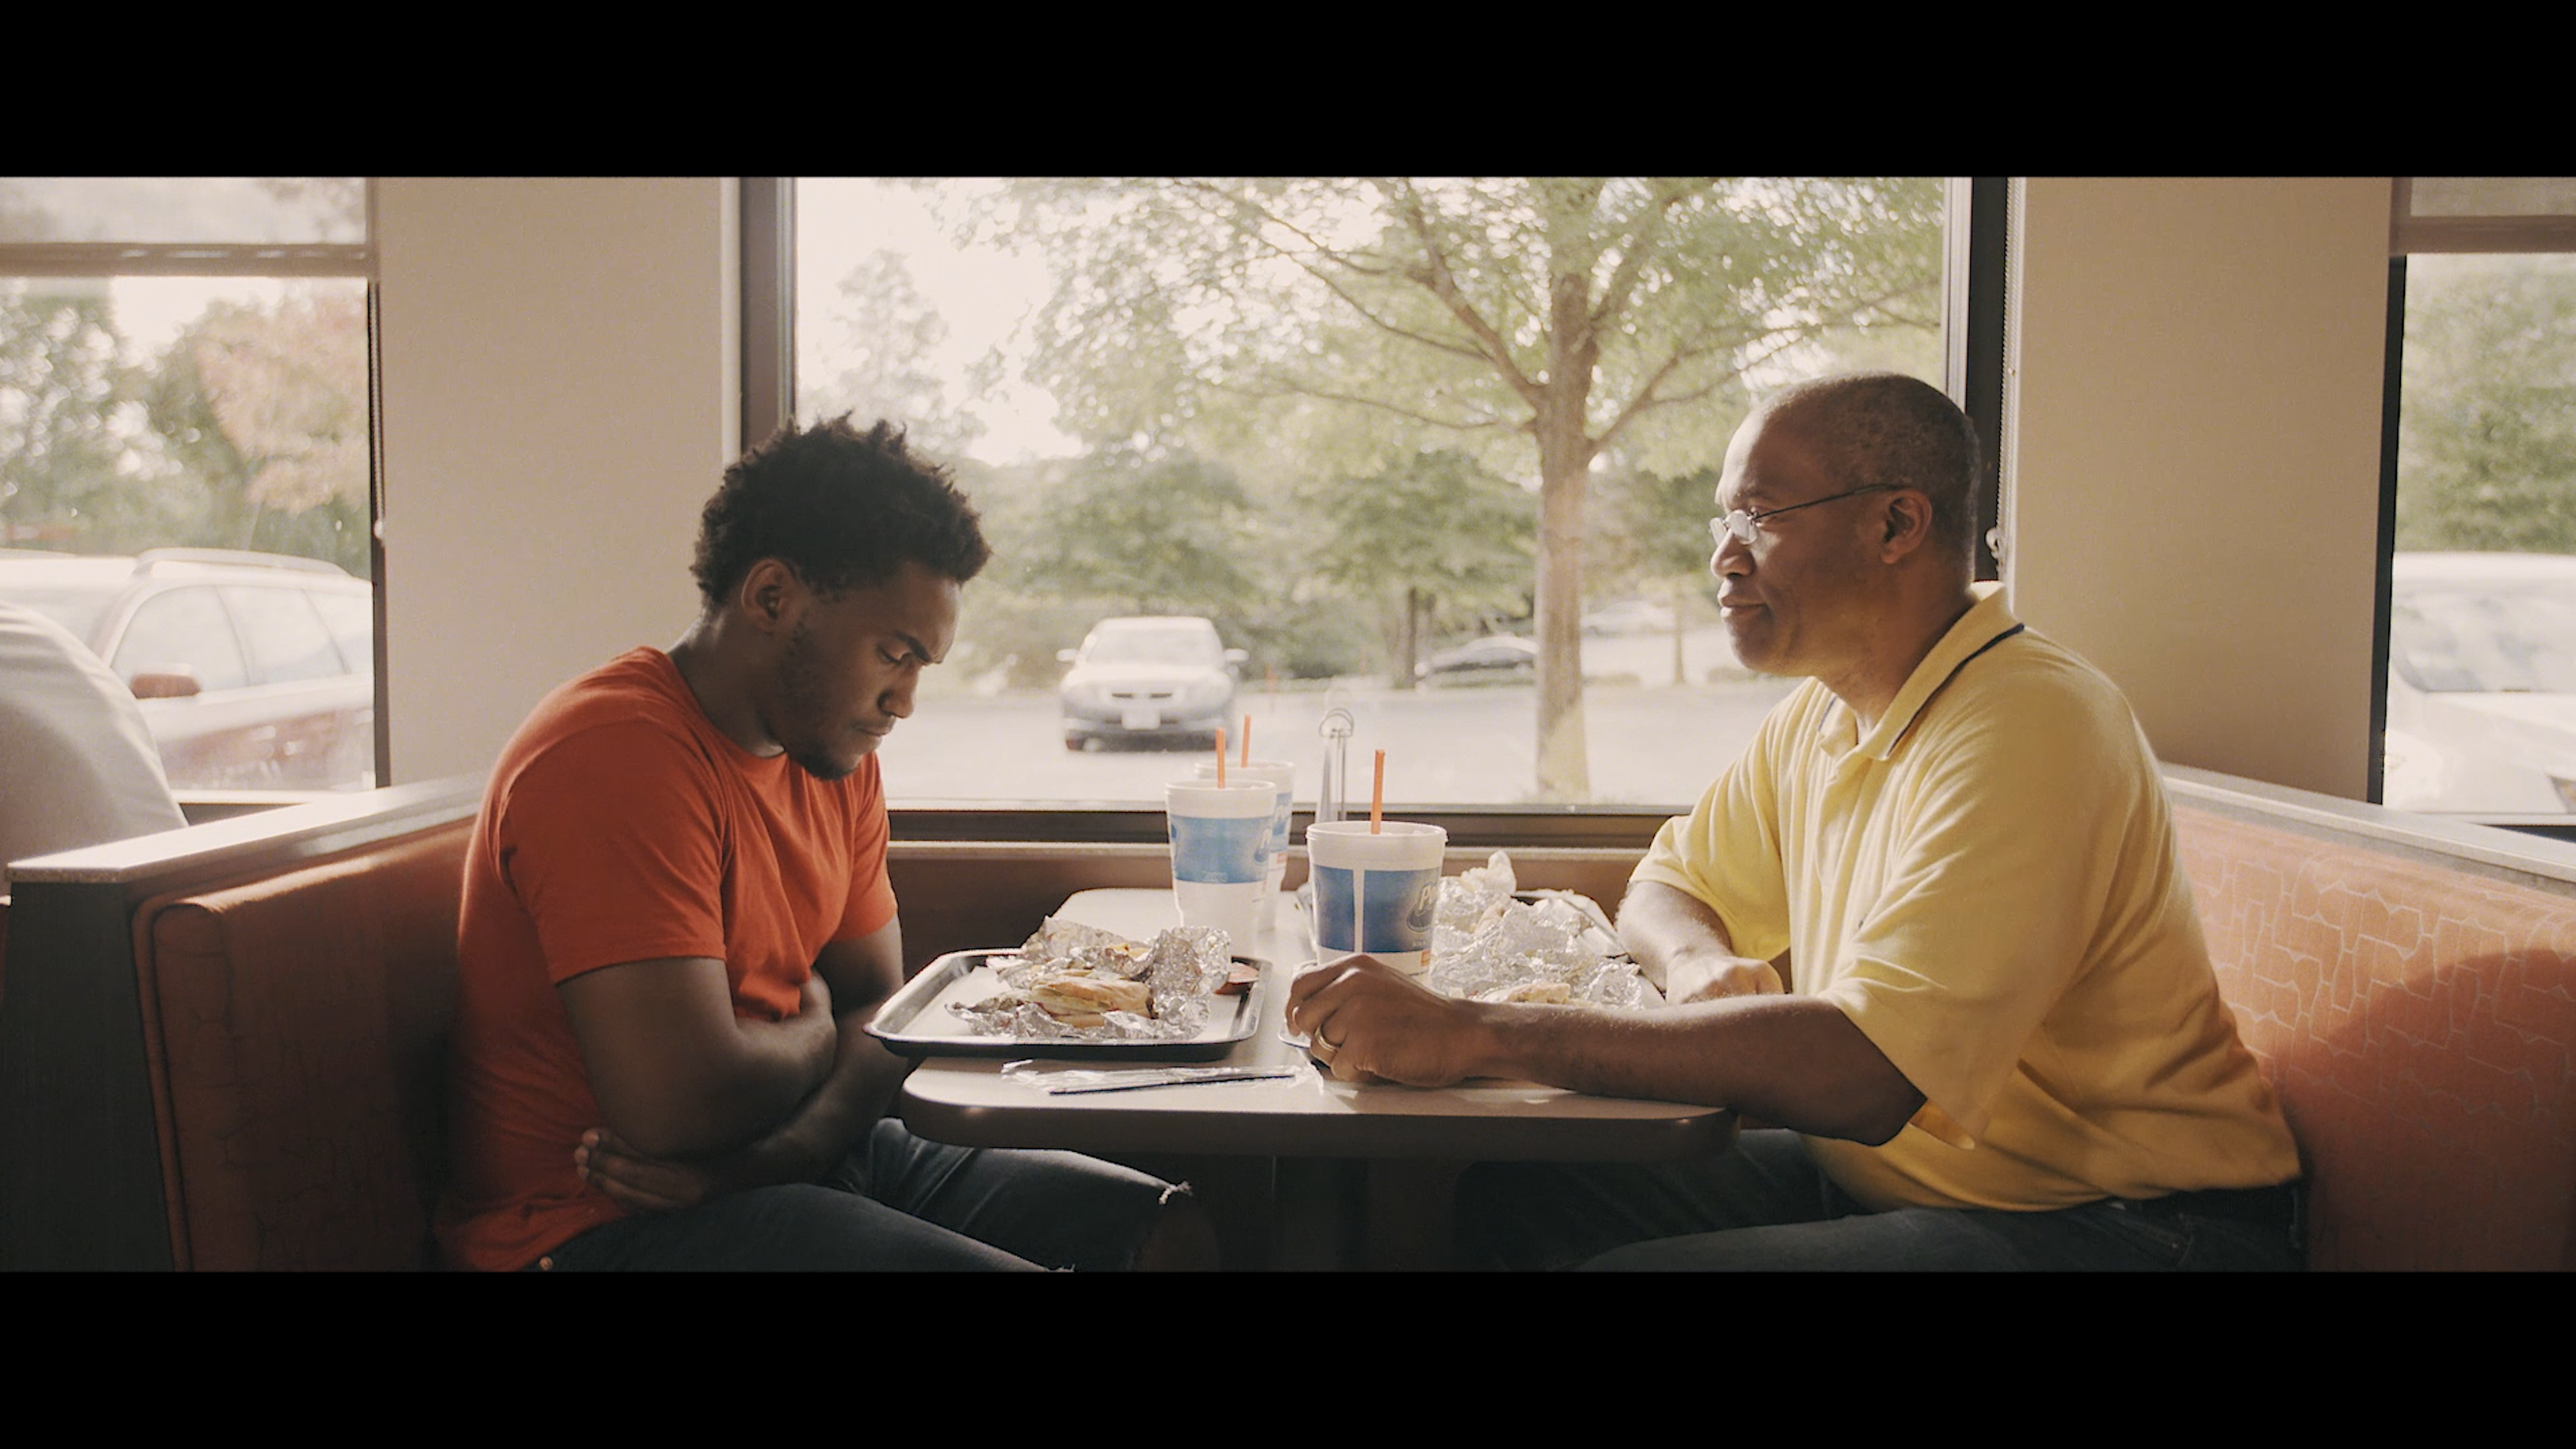 Sheldon Mba and Arnold Coleman in Found (2016)